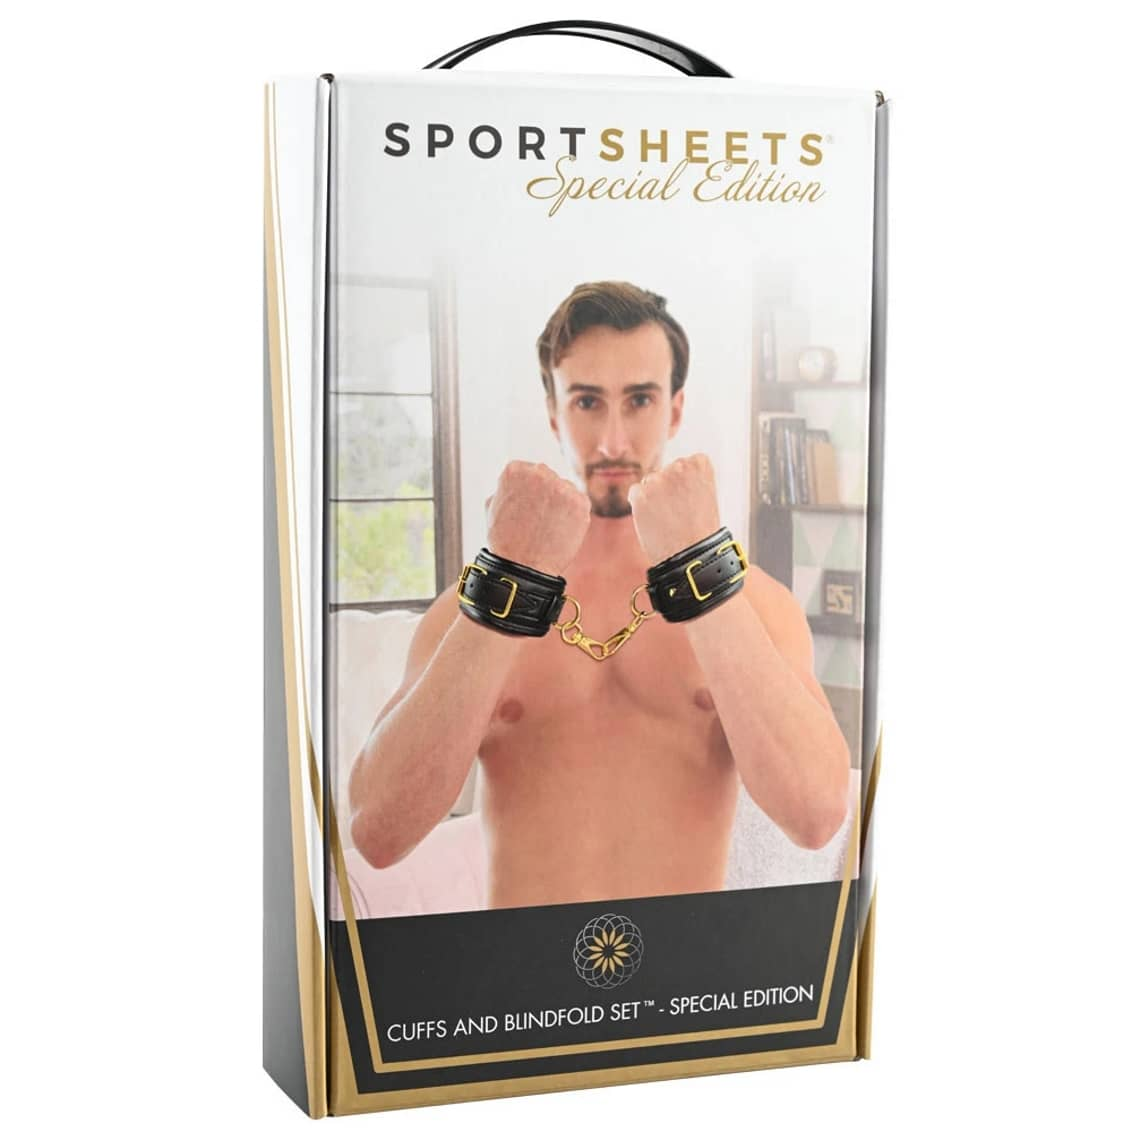 Cuffs and Blindfold Set - Special Edition by Sportsheets